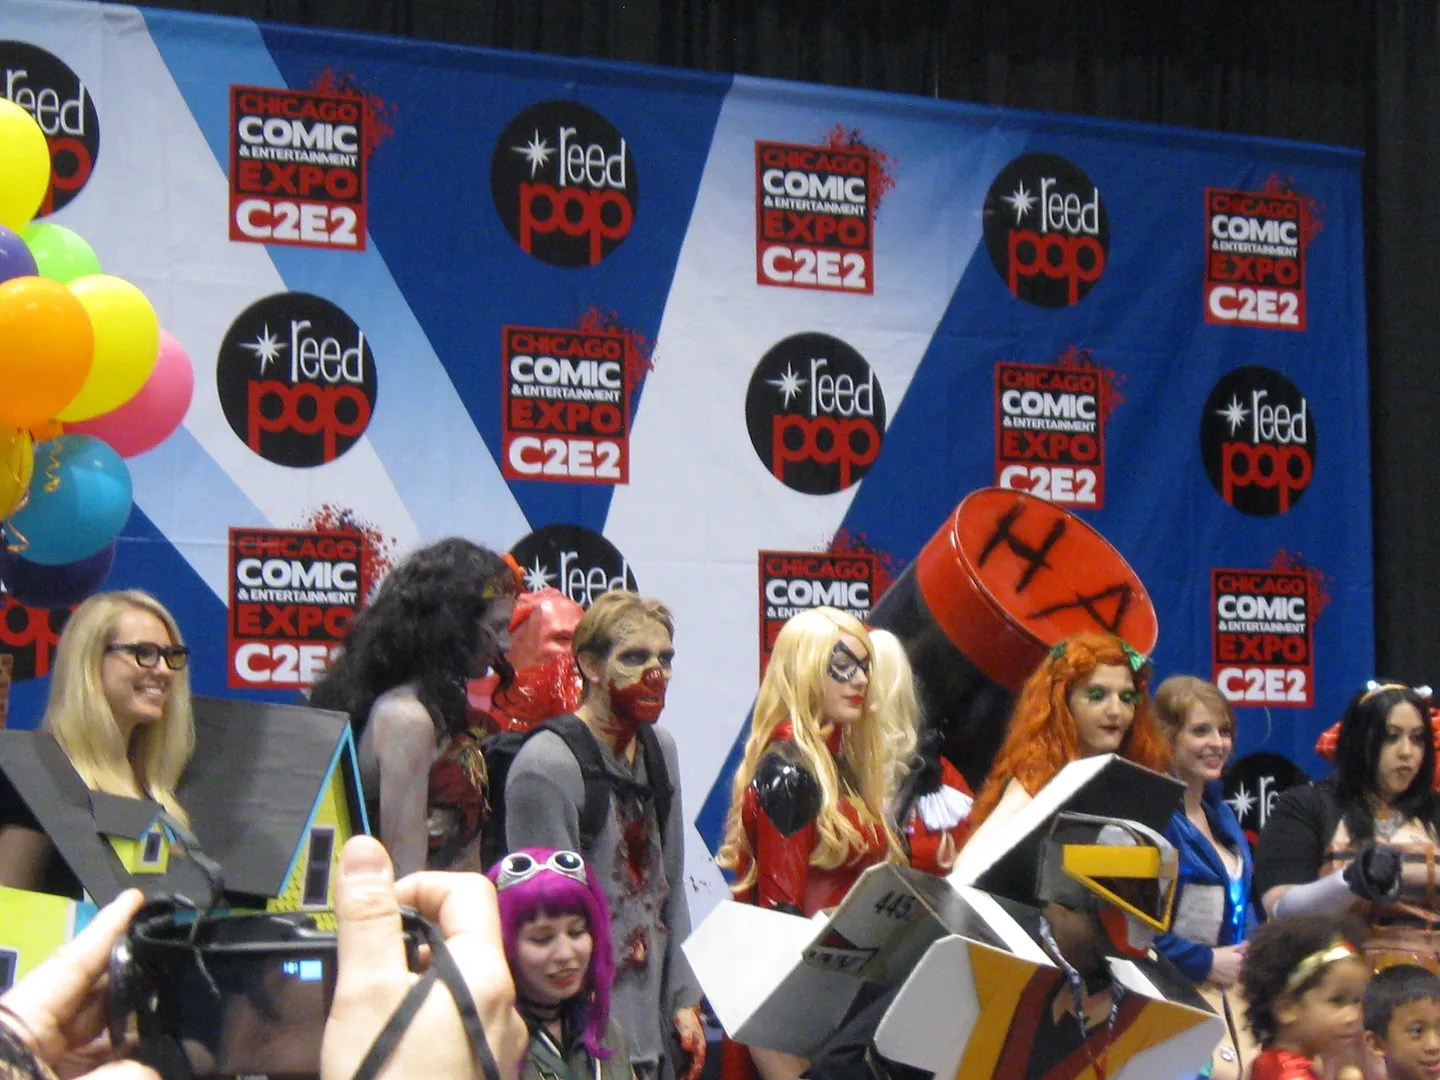 Friday costume contest, C2E2